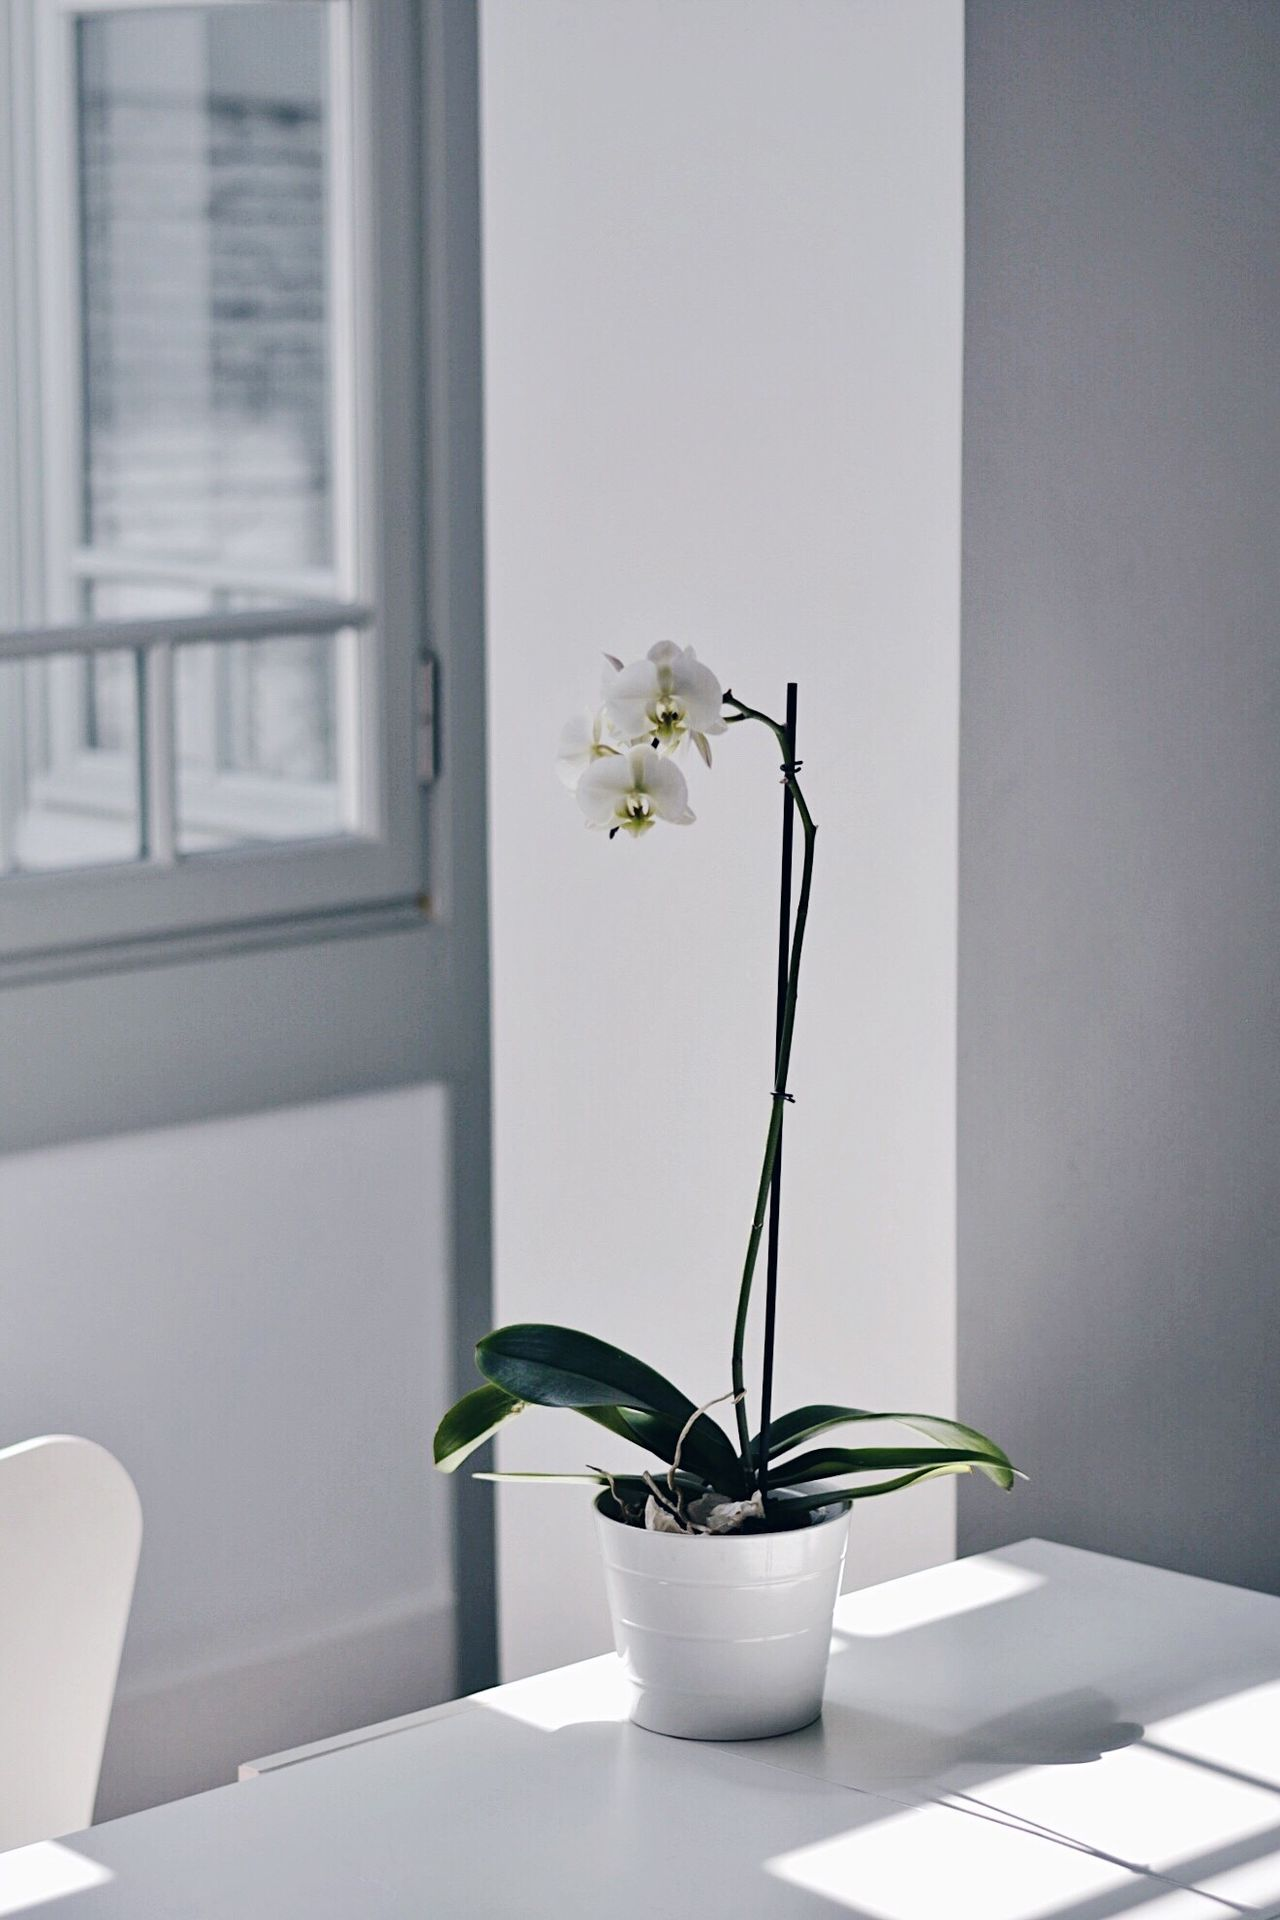 Indoors  Vase Home Interior White Color Window Flower No People Day Close-up Flower Head TheWeekOnEyeEM EyeEm Best Shots Sunlight Shadowplay Detail Plants And Flowers Decoration Interior Decorating Plants Minimalism Interior Plant White Aesthetics BYOPaper! Live For The Story